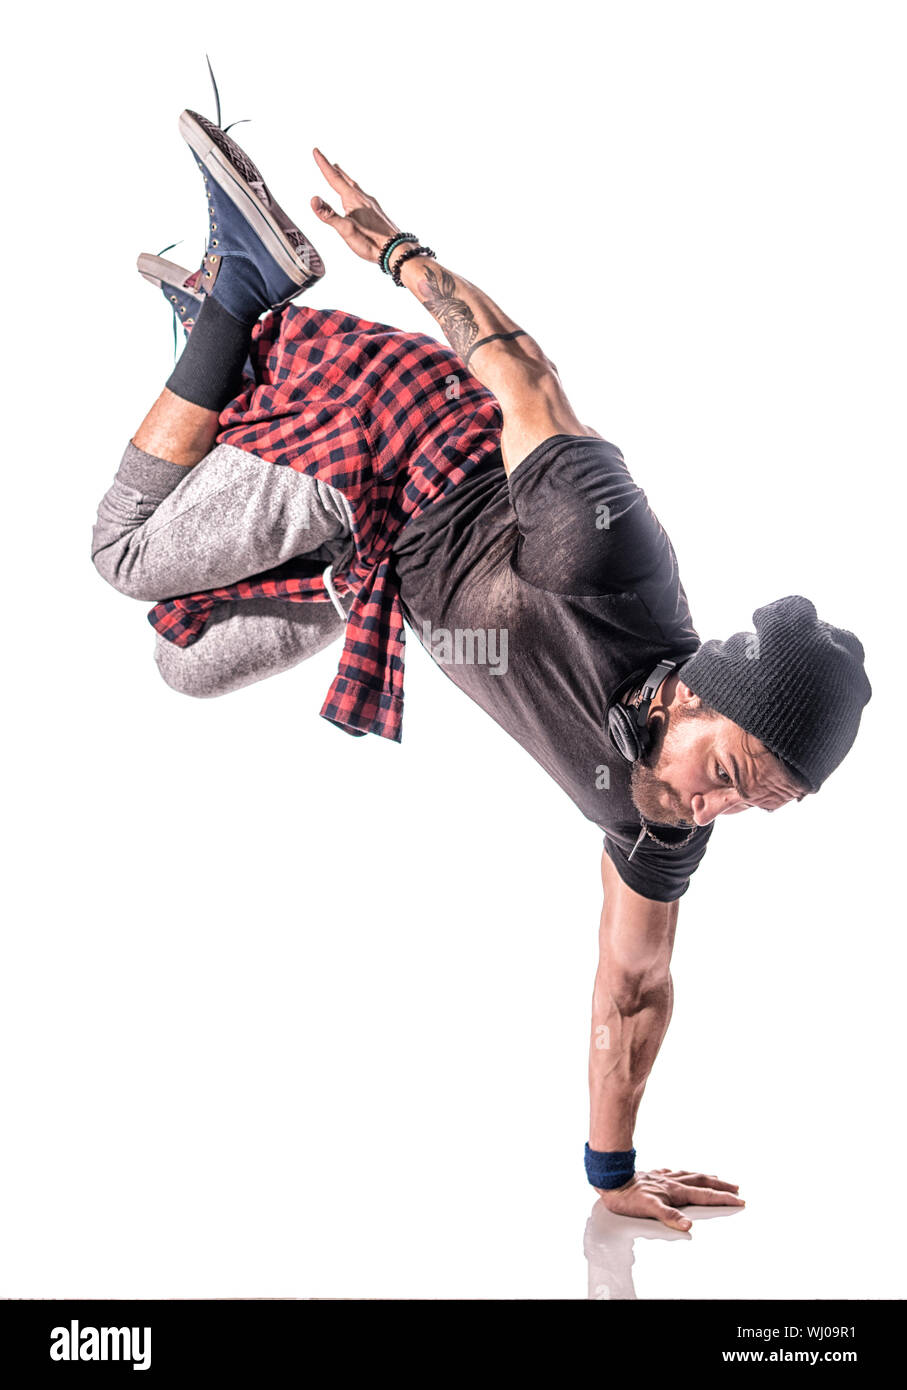 Hip-hop Dancer Doing Handstand Against White Background Stock Photo